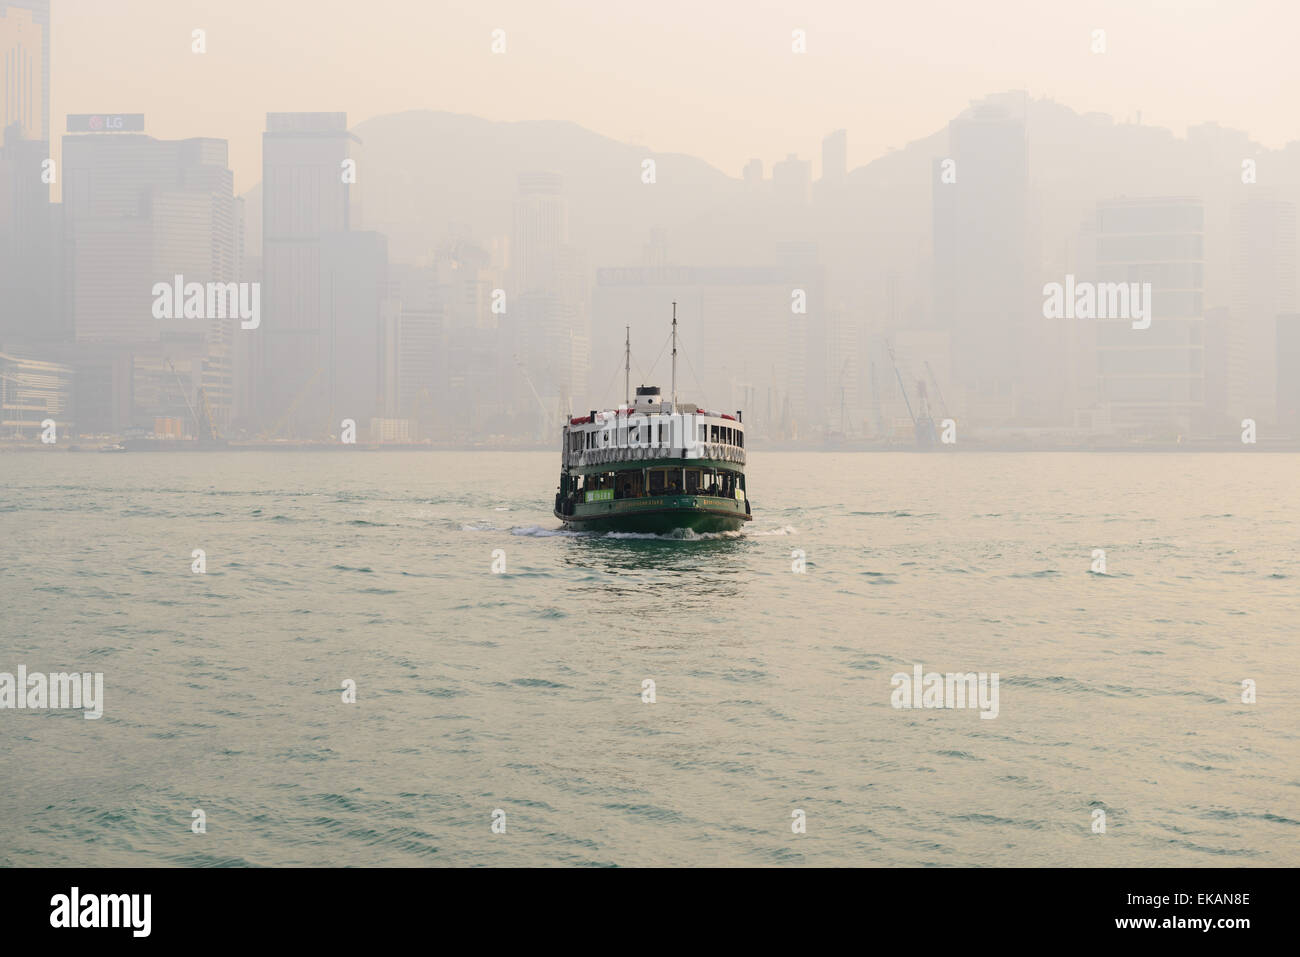 Hong Kong Star Ferry on a smoggy Hong Kong DayStock Photo